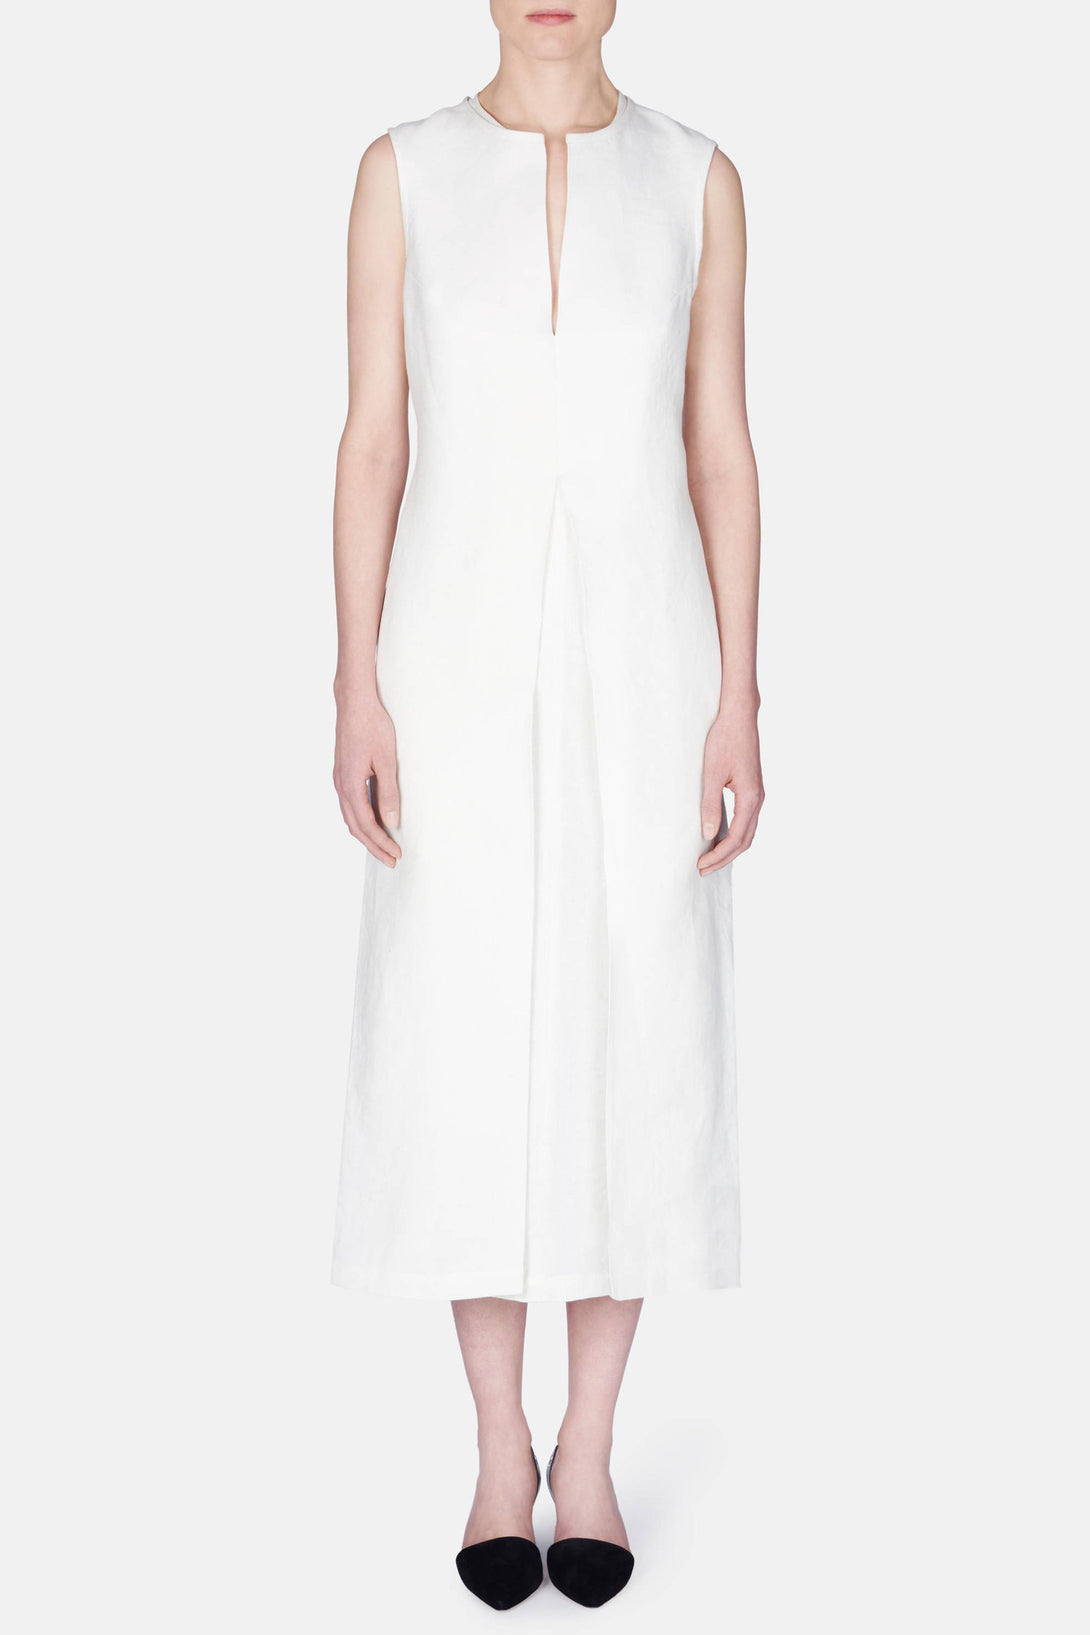 Dress 23 Neck Detail Shift Dress - Ivory